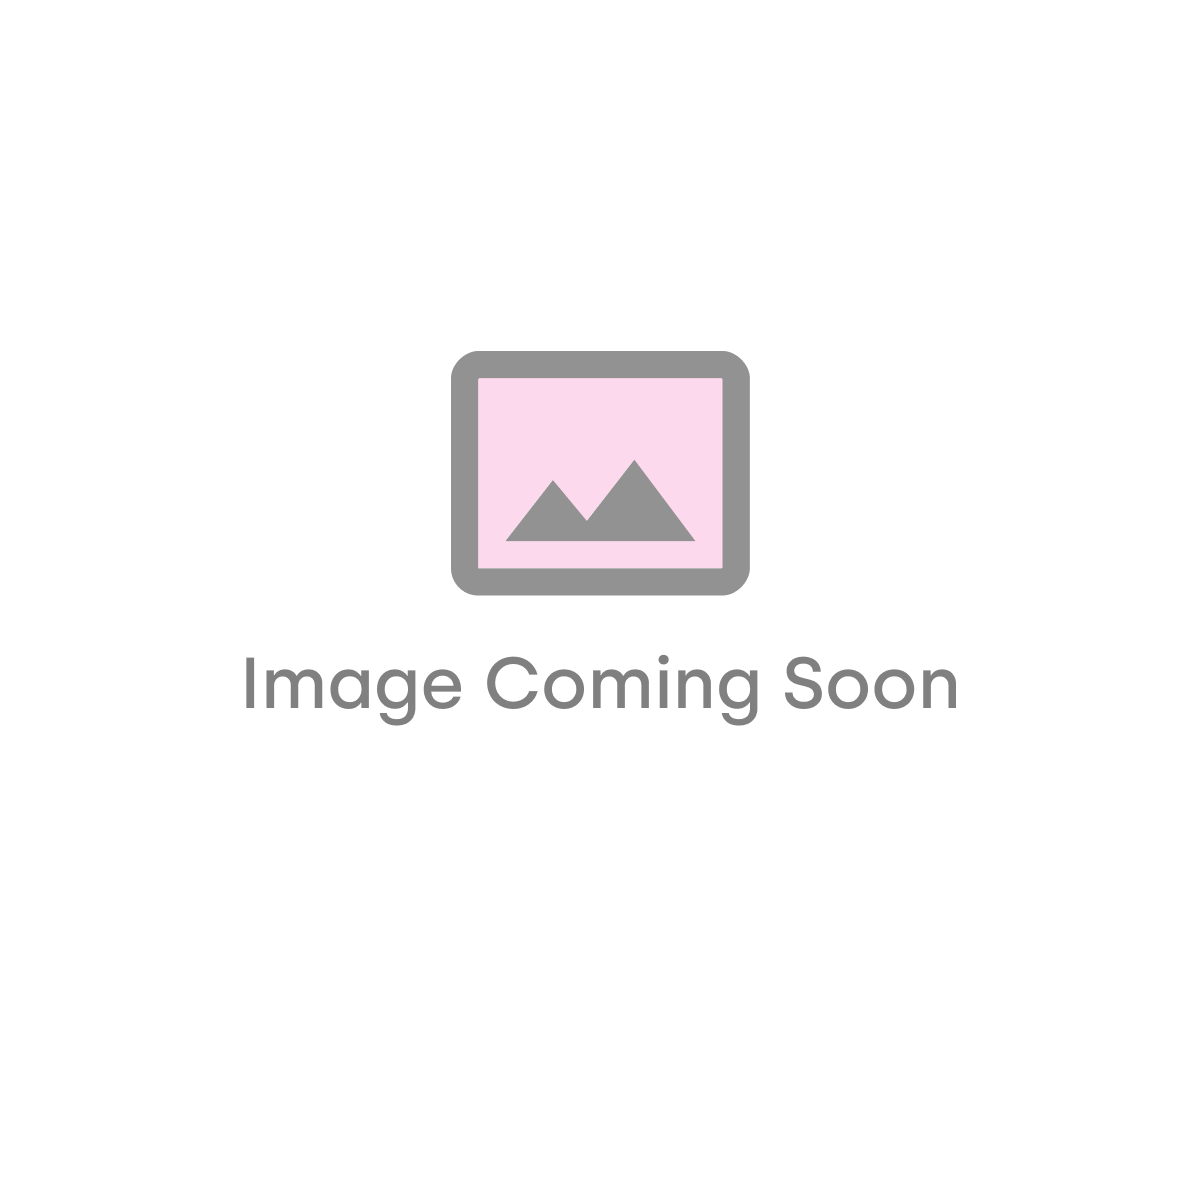 Aquadart 10 700mm Wetroom Panel - Clear Glass (18669)